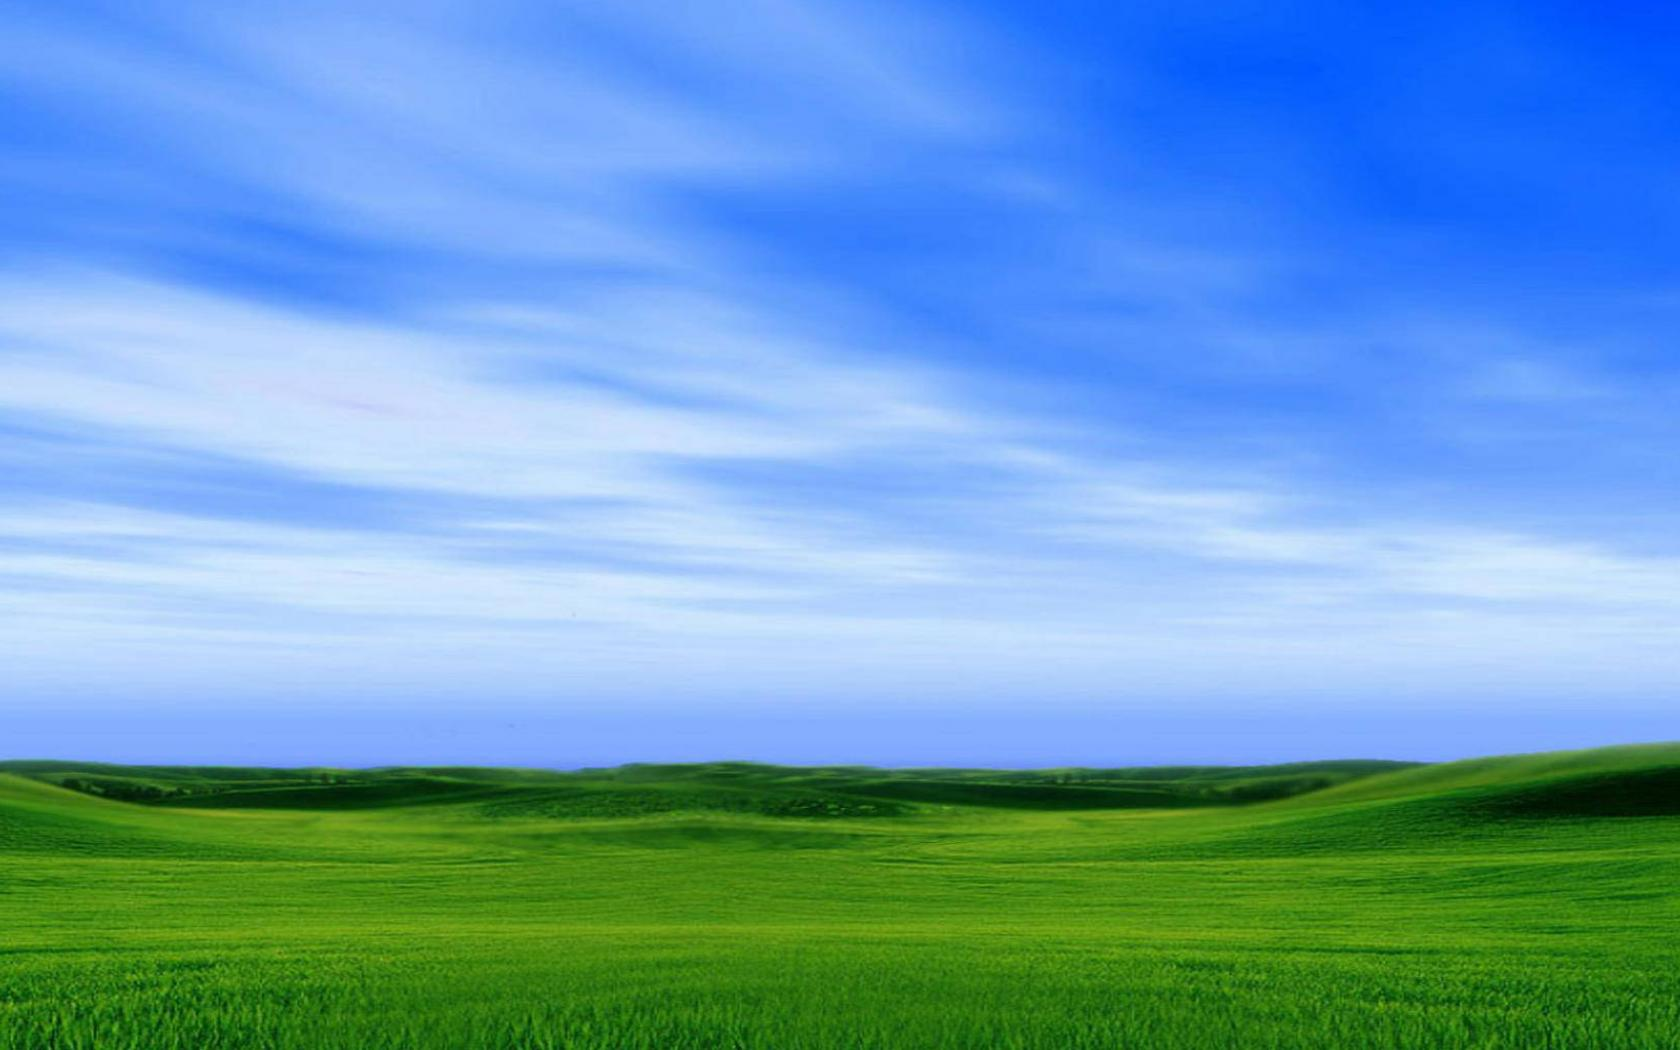 1680x1050 grass icor dual monitor looking dual screen backgroundsisnt 1680x1050